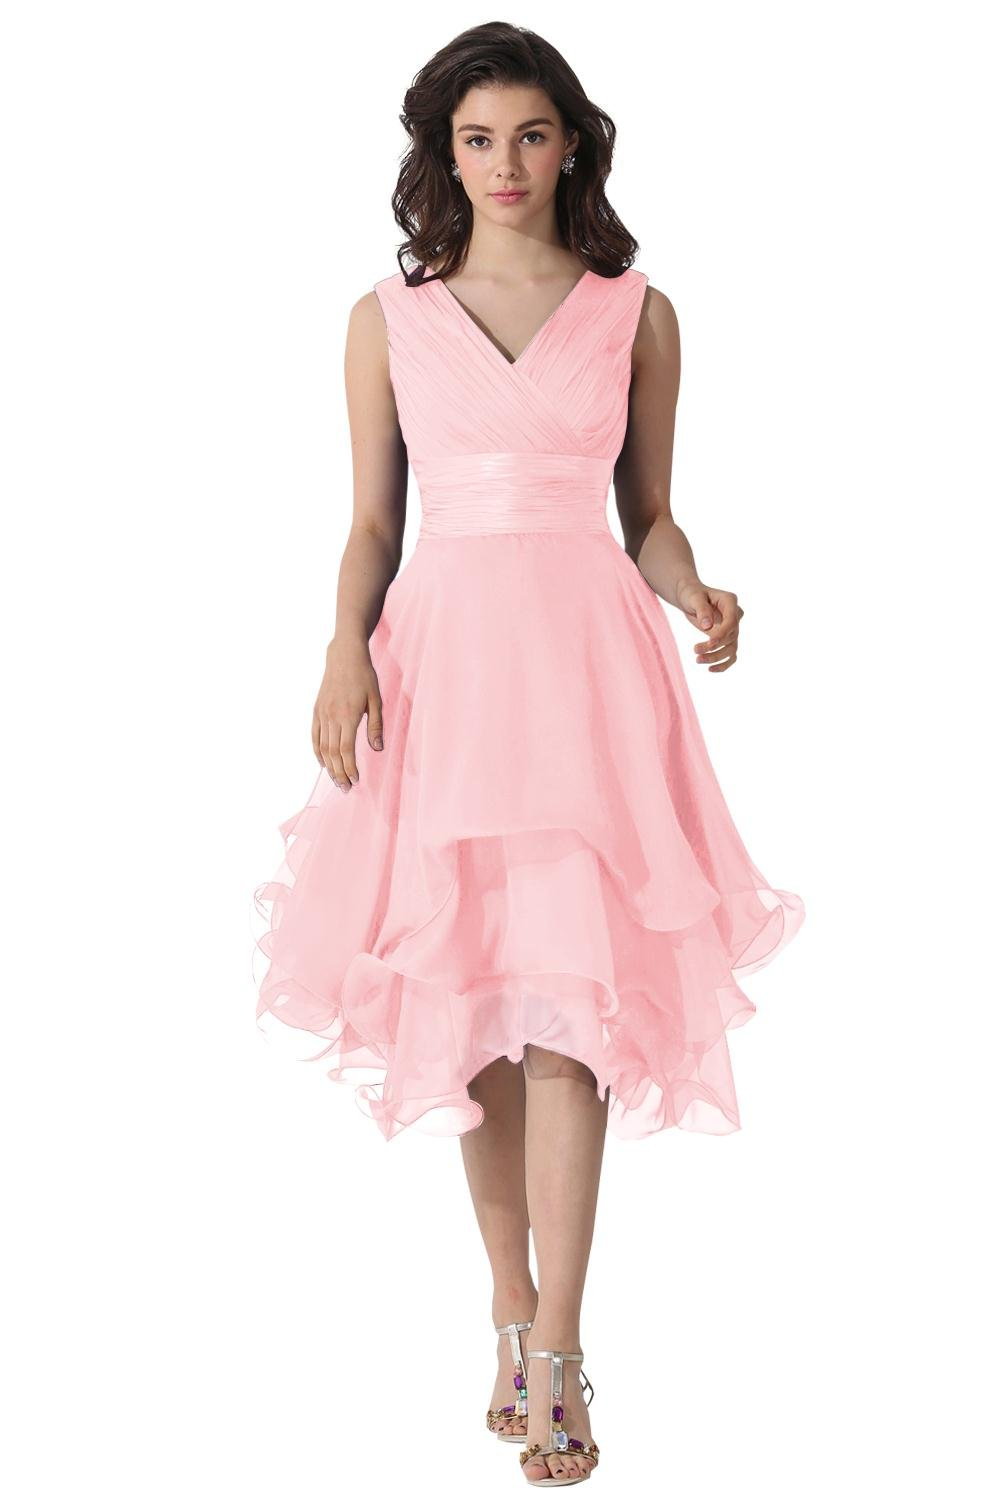 KAMA BRIDAL Double V-neck Mid Length A-line Chiffon Formal Prom Mother Dresses US14 Blushing Pink